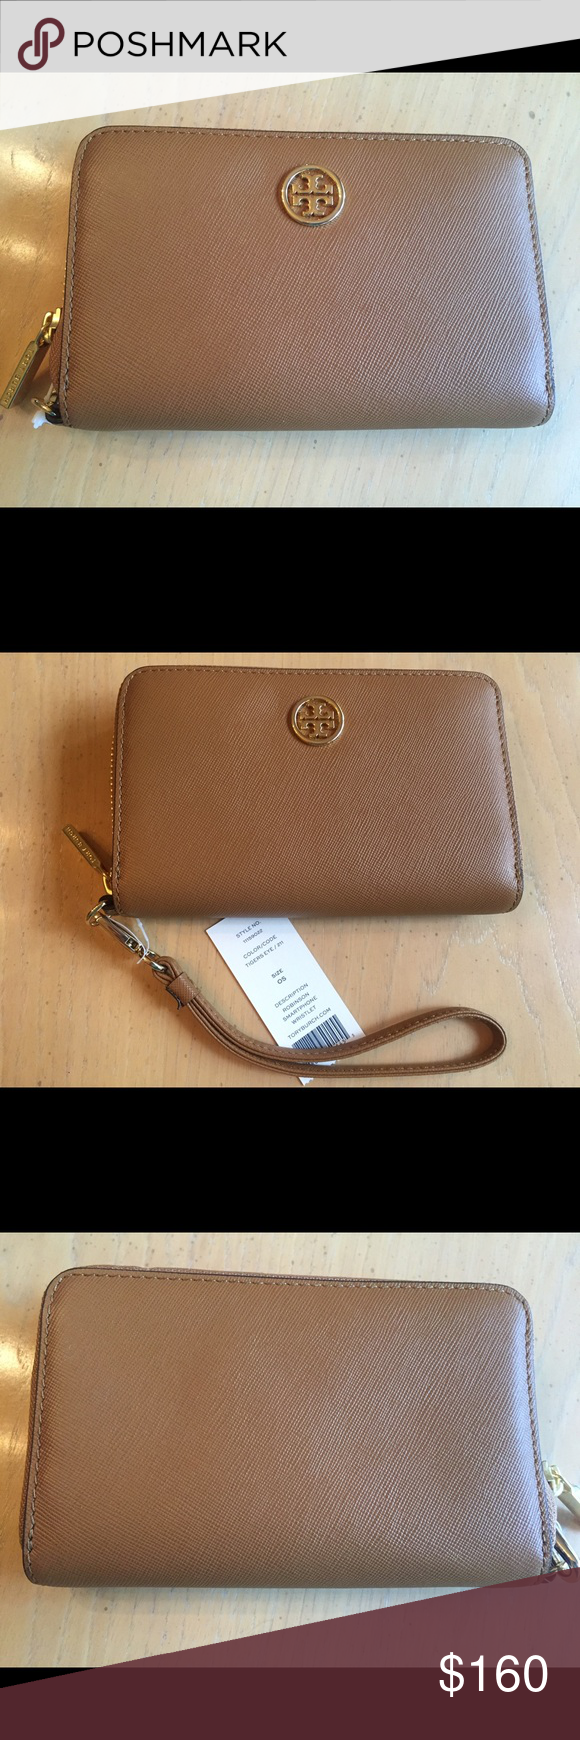 NWT Tory Burch Robinson Smartphone Wristlet NWT 100% Authentic Tory Burch Robinson Smartphone Wristlet.  Tigers Eye Color (Tan). Beautiful Wallet/Wristlet to keep all your essentials organized!  Has compartment for phone, dollar bills, slip pockets for credit cards & zipper pocket for change.  Gold hardware.  Gold Tory Logo.  Removable wrist strap.  Brand New, Never Used.  Super cute and so functional! Tory Burch Bags Clutches & Wristlets